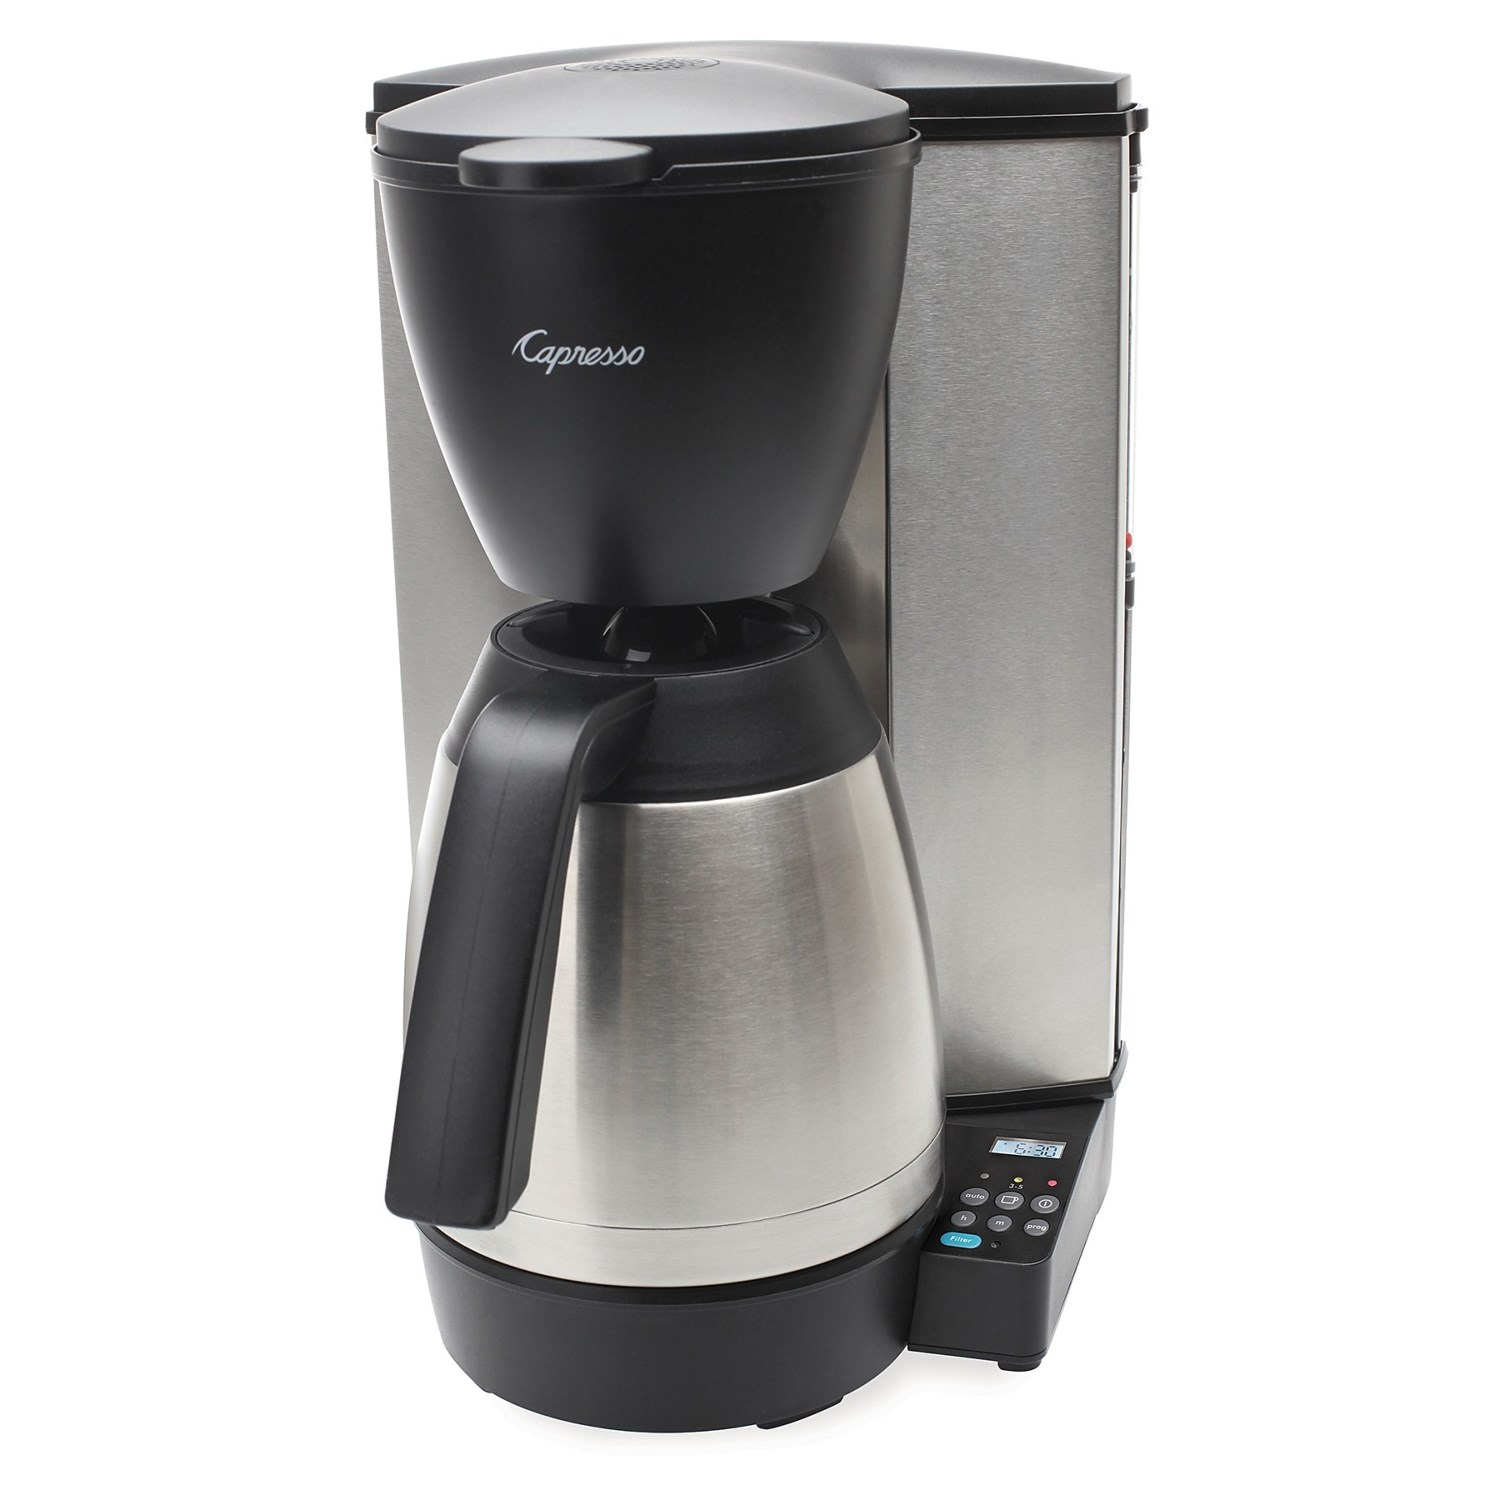 Capresso MT600 Plus Drip Coffee Maker - 10 Cup, Thermal Carafe, Charcoal Water Filter - Save 34%